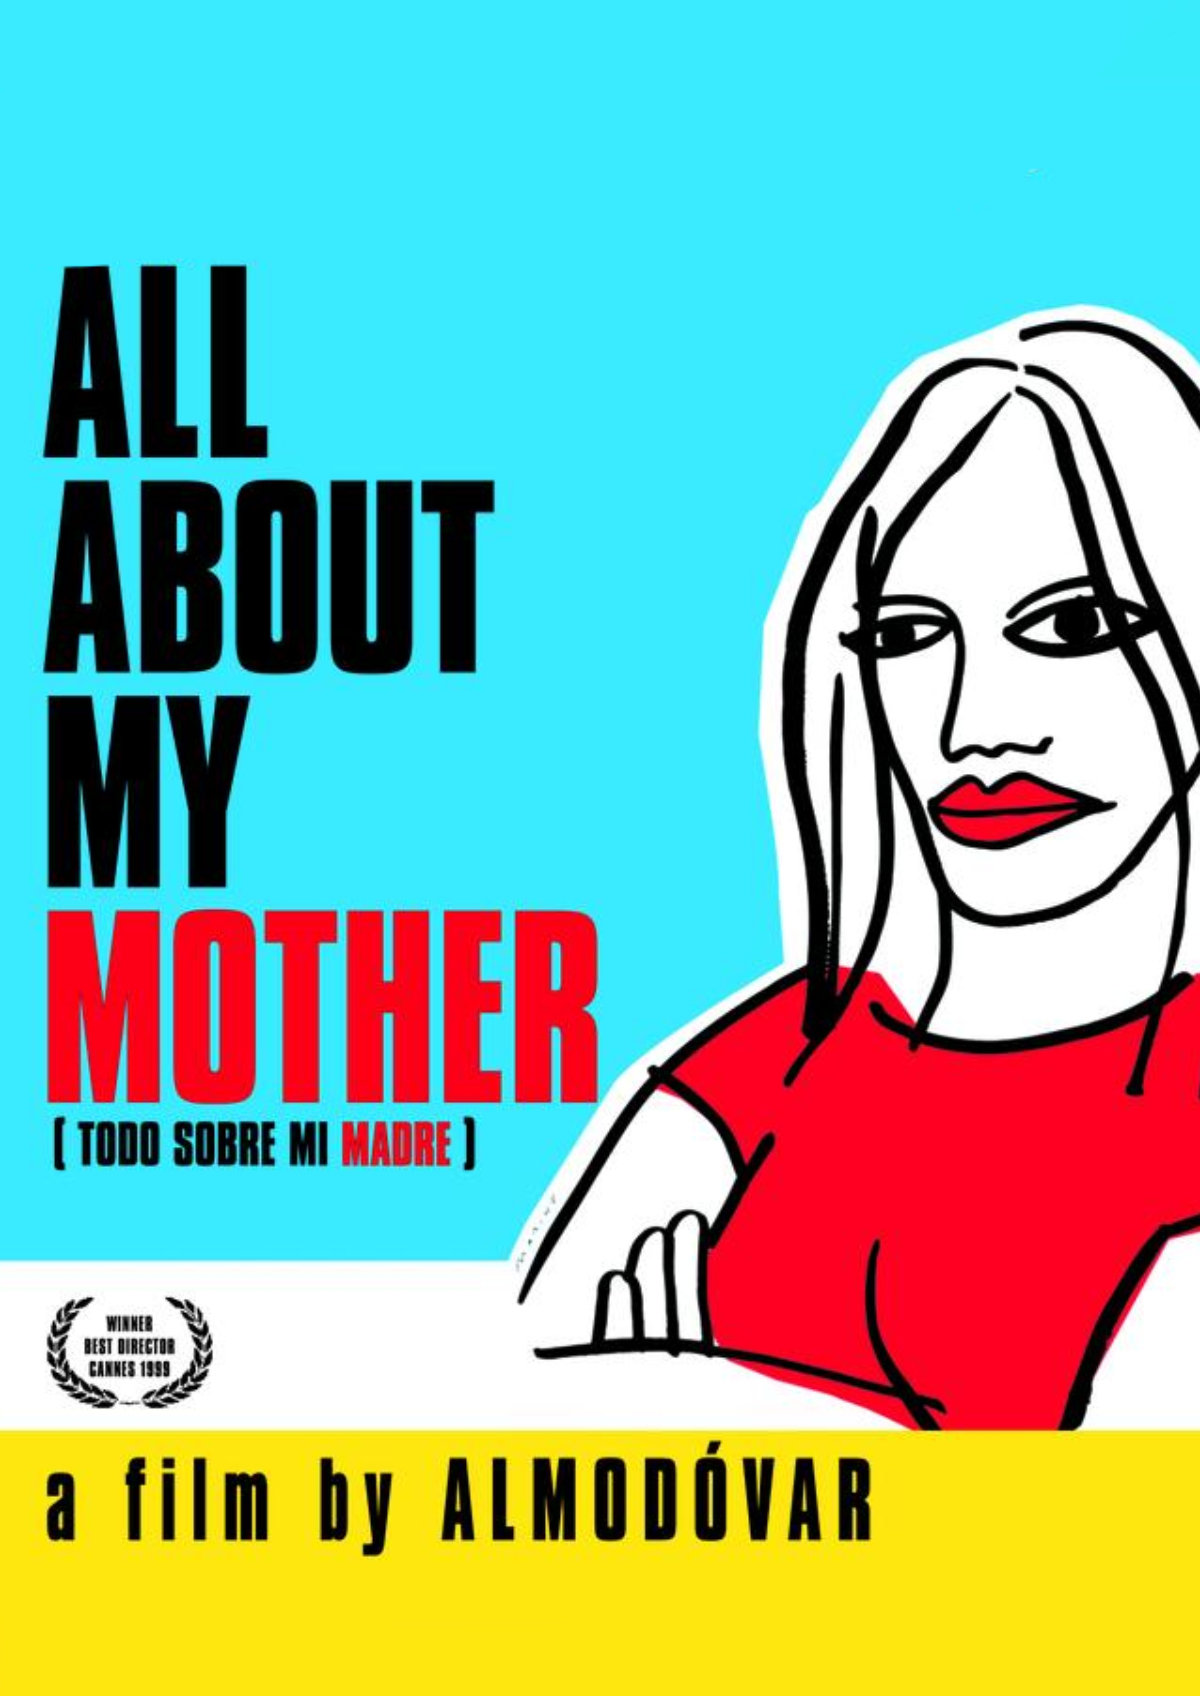 'All About My Mother' movie poster